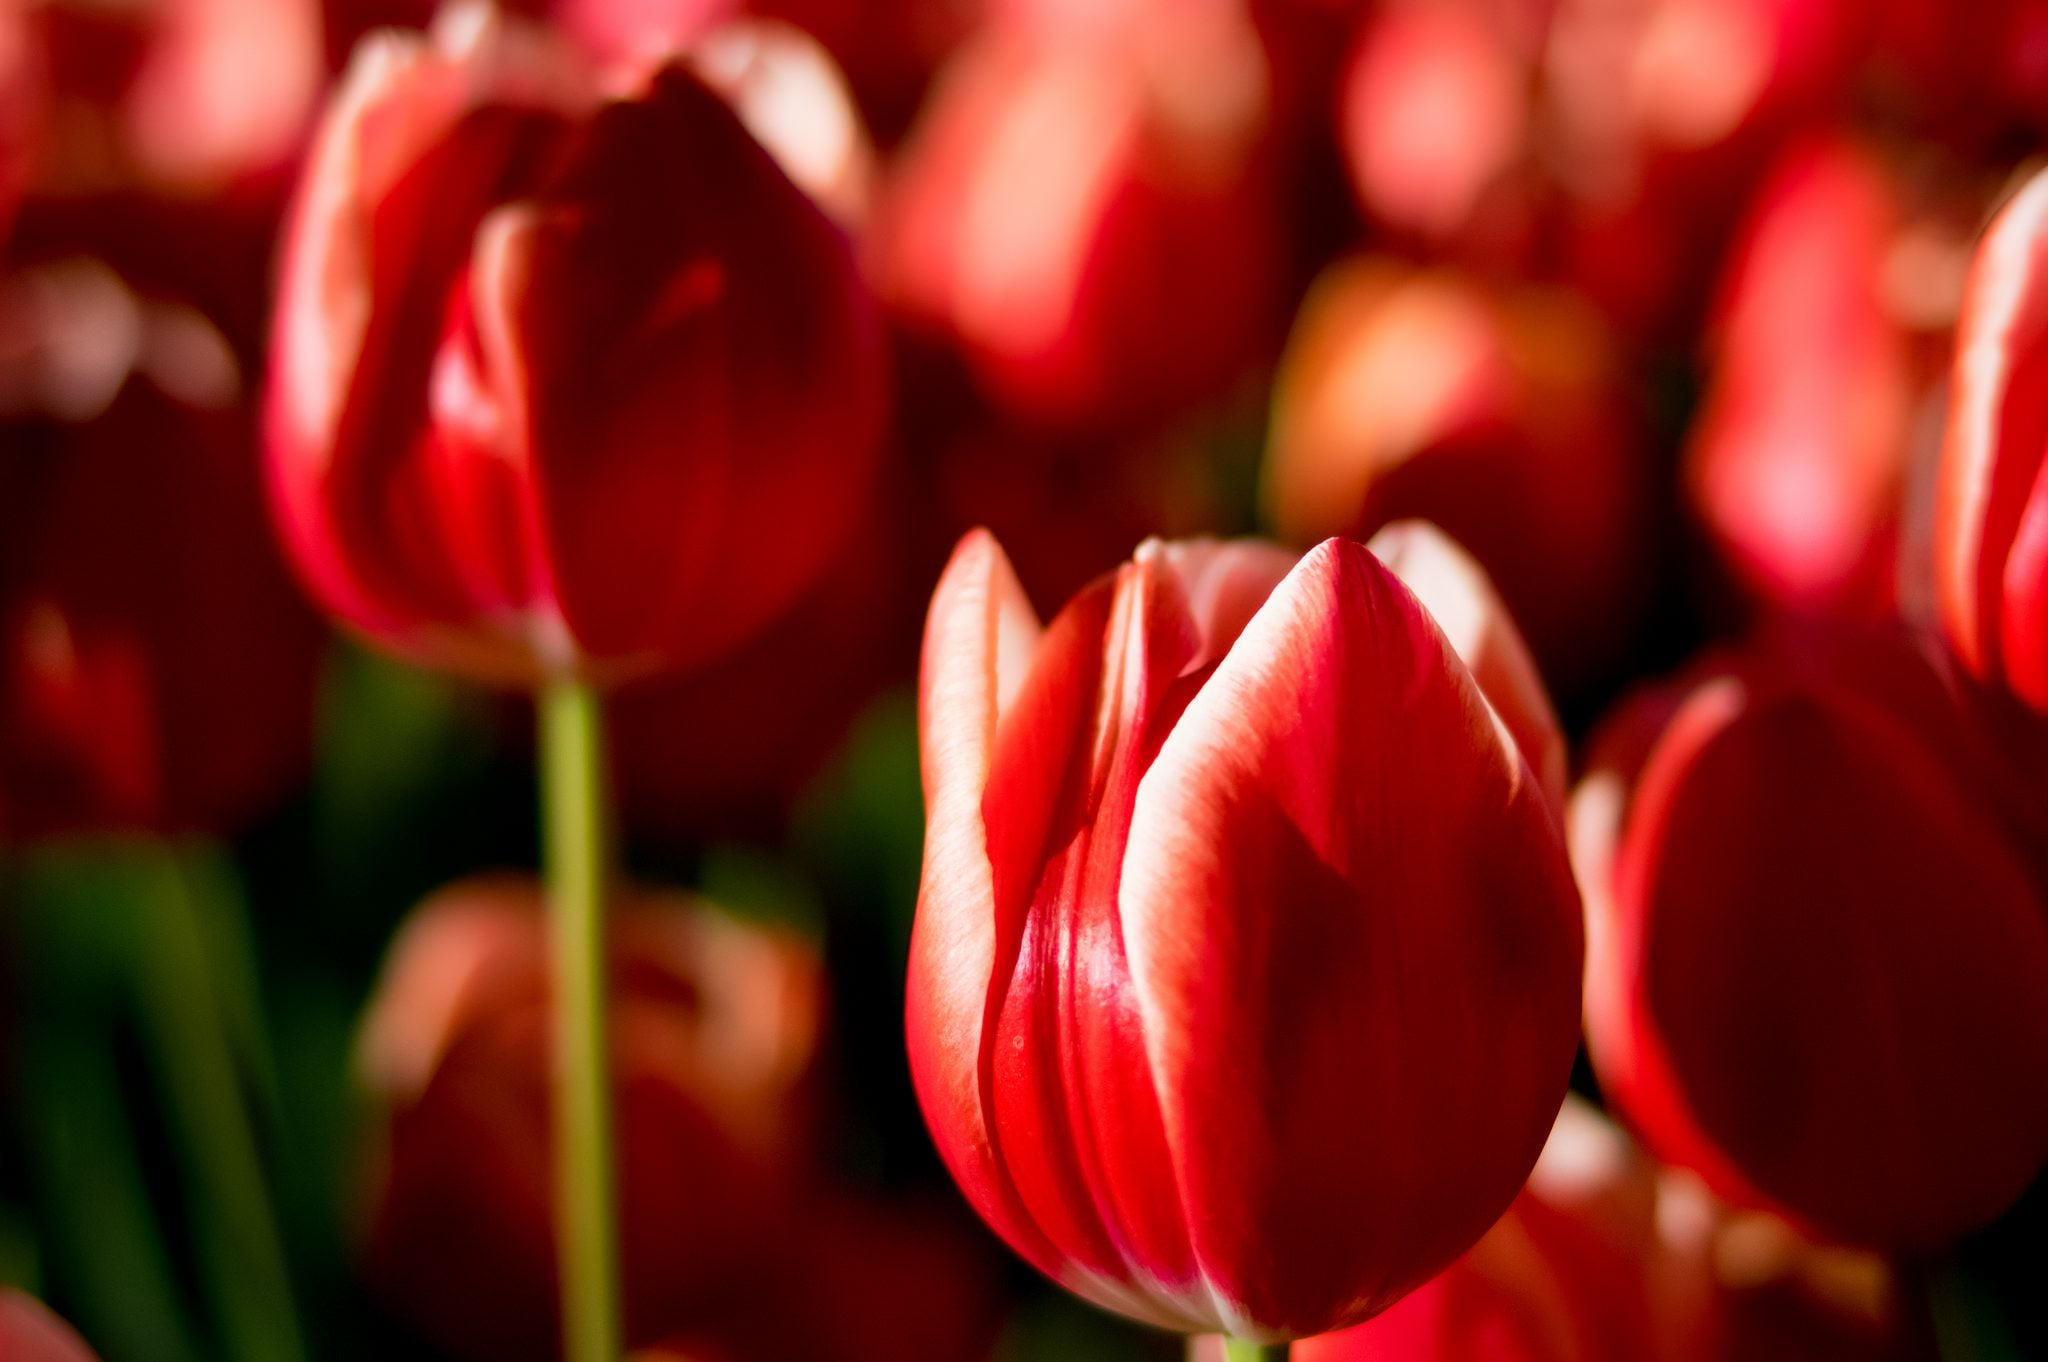 Tulips wallpaper 1080p